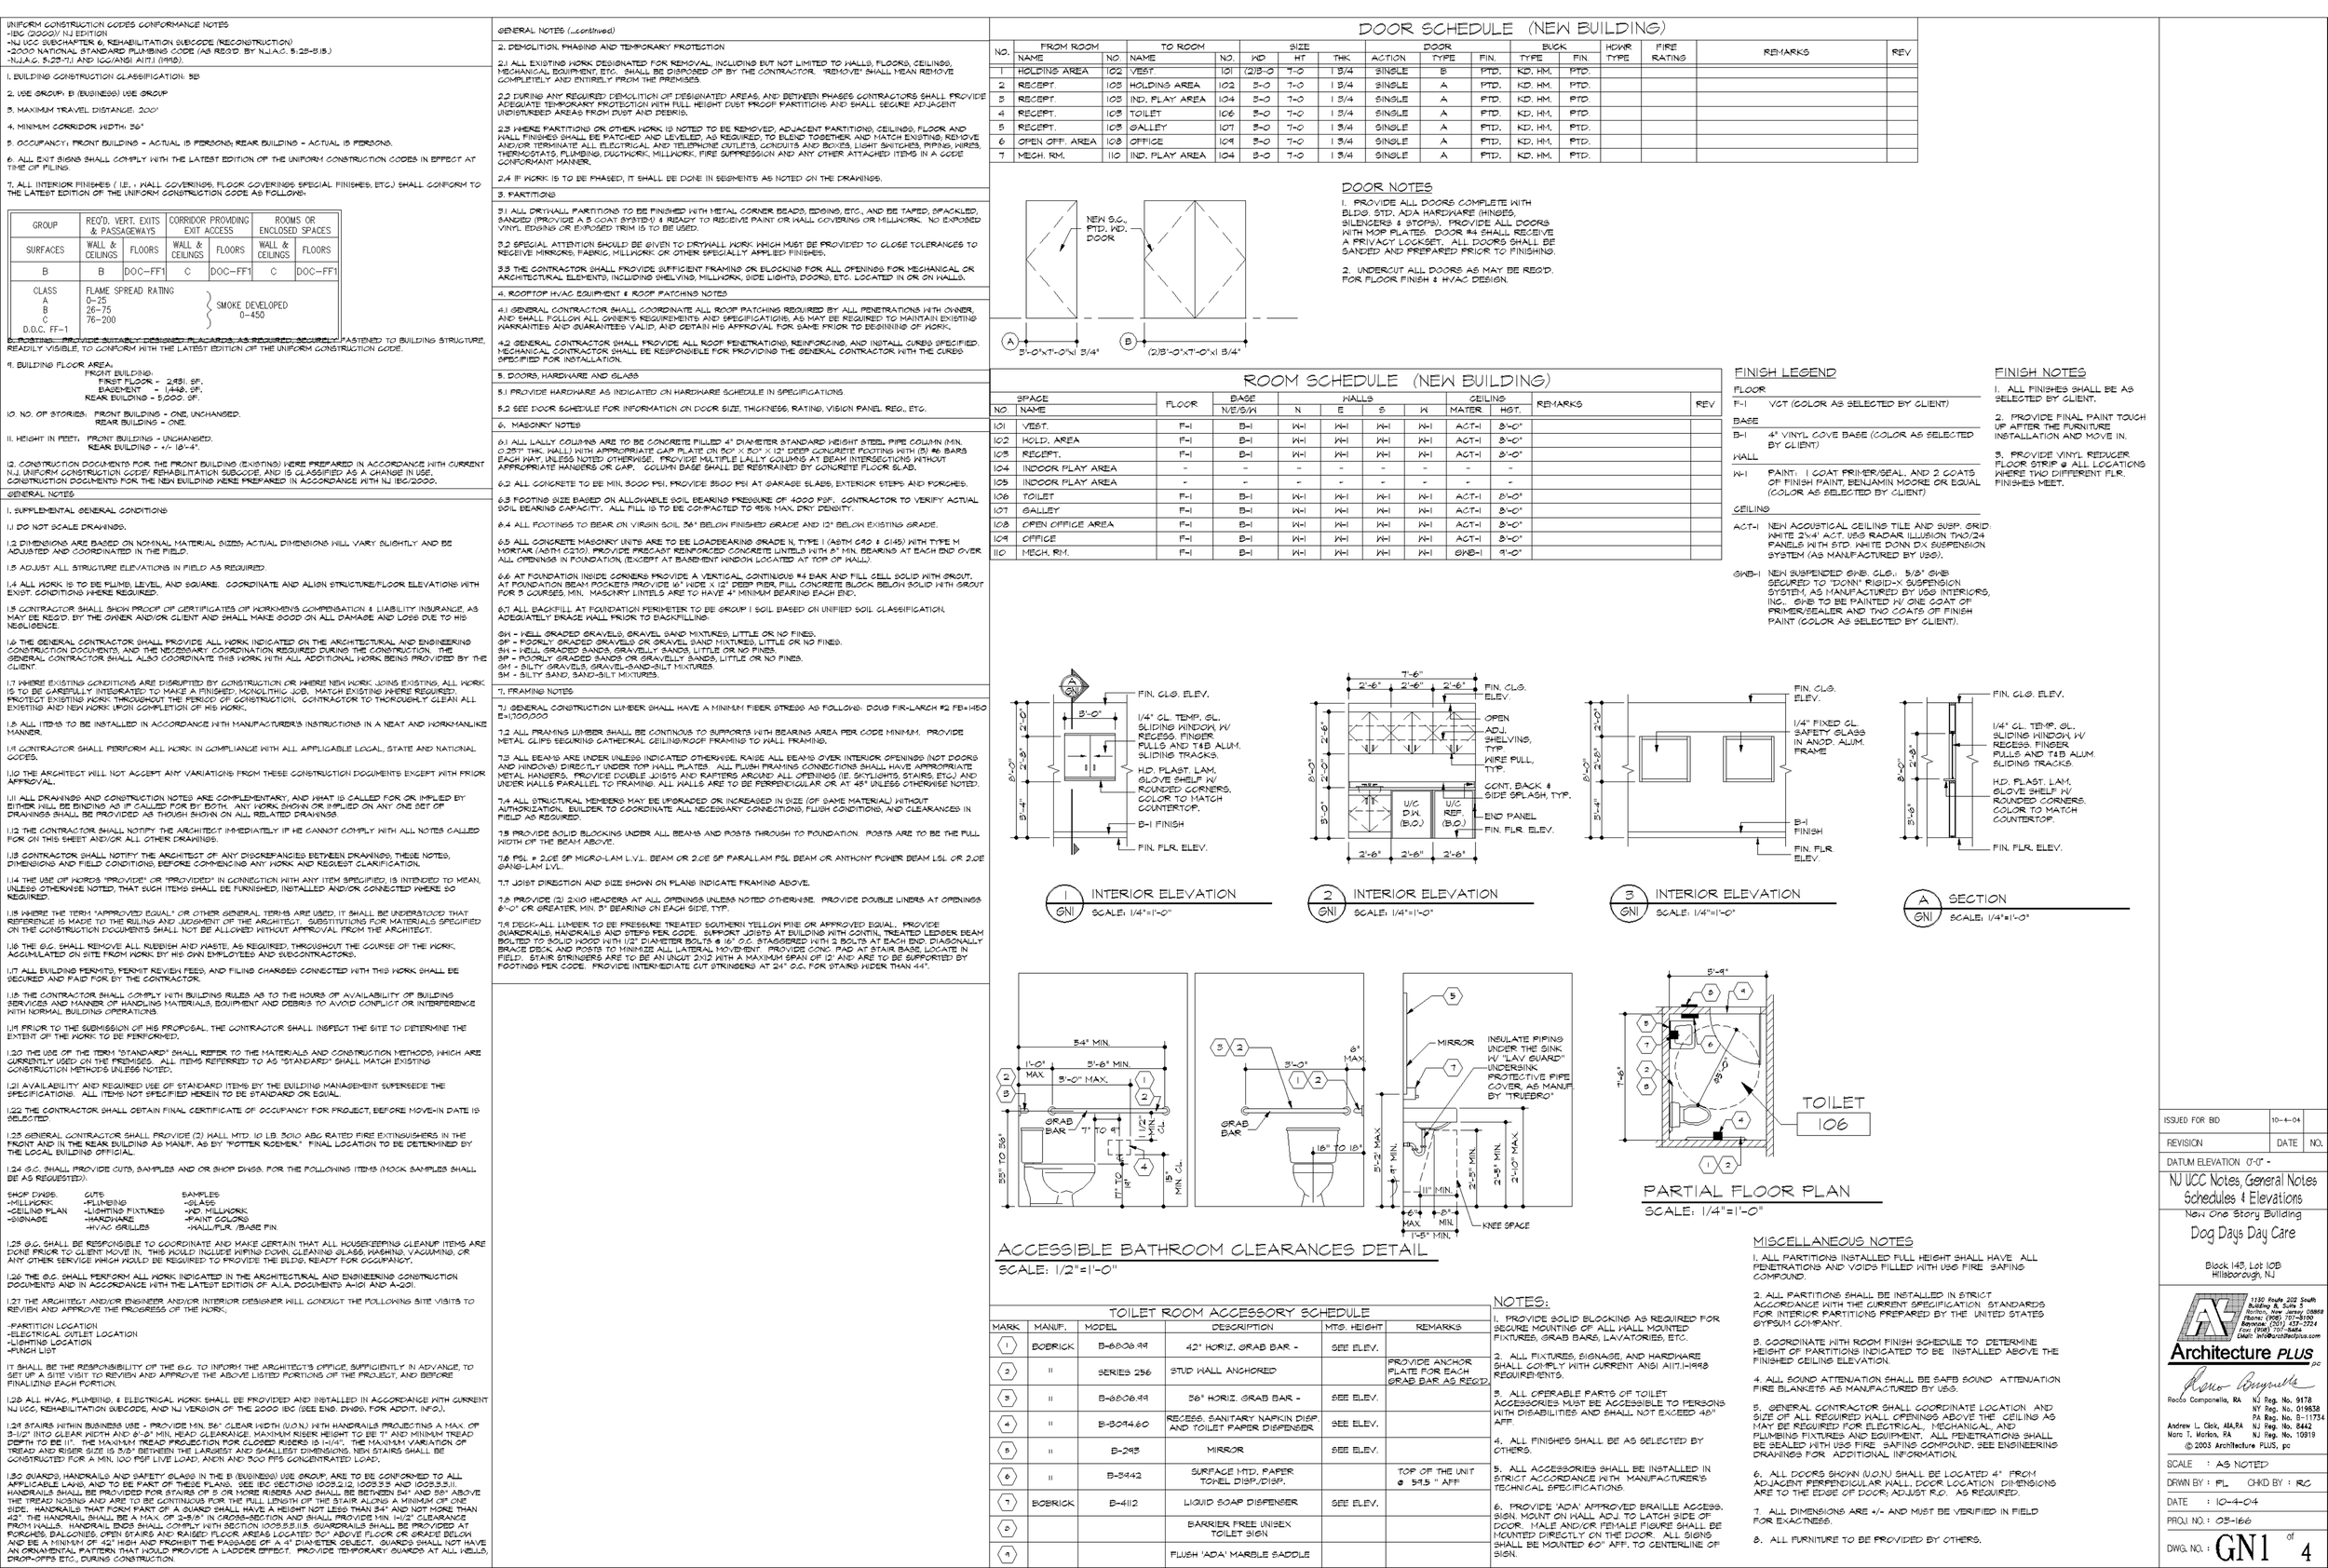 Architectural 03166gn1.png